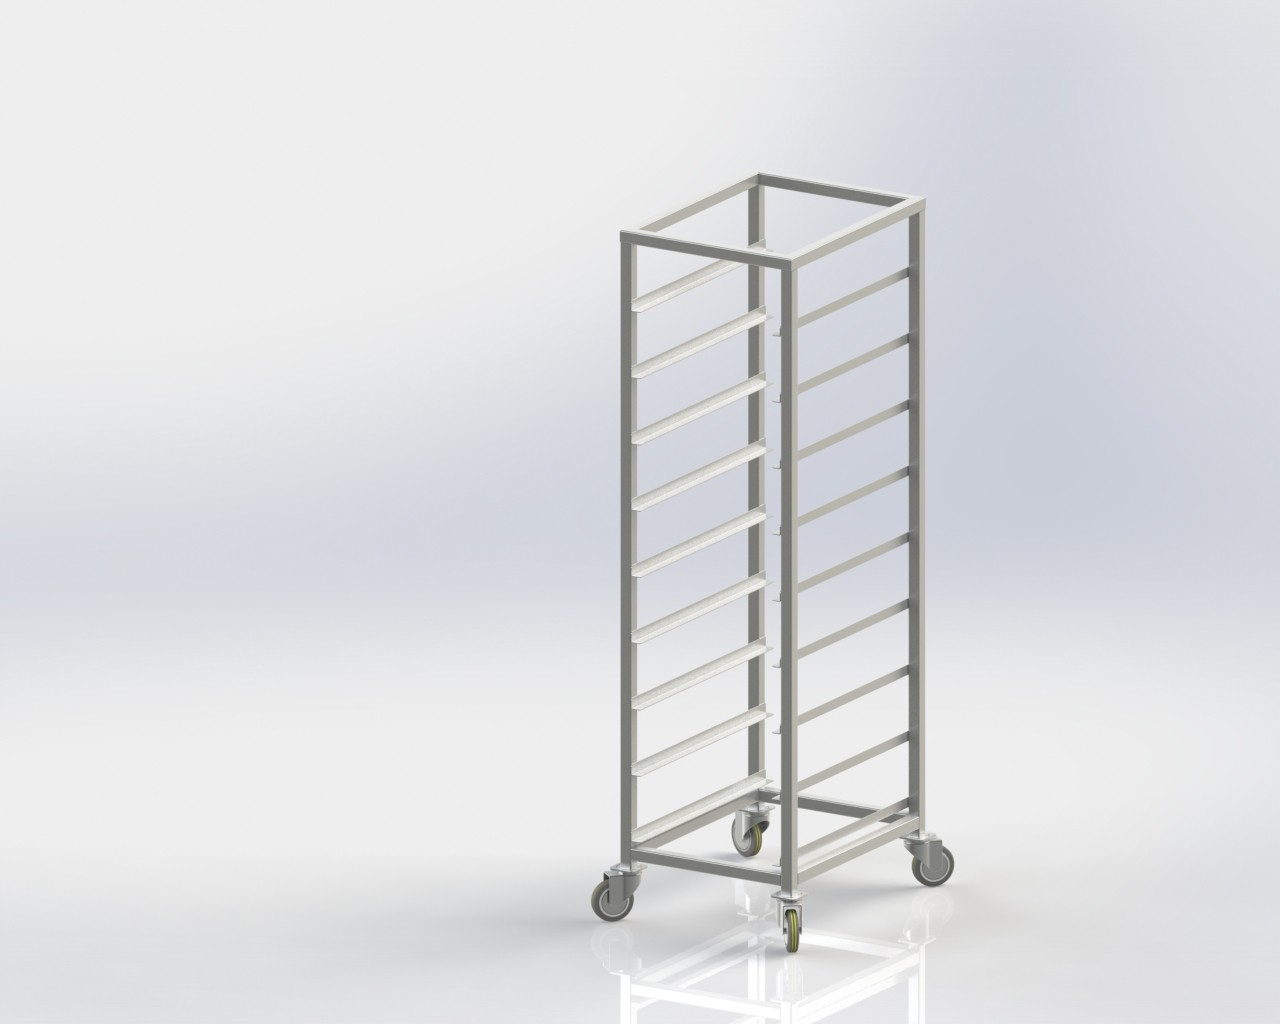 Vegetable Rack Trolley for commercial kitchen